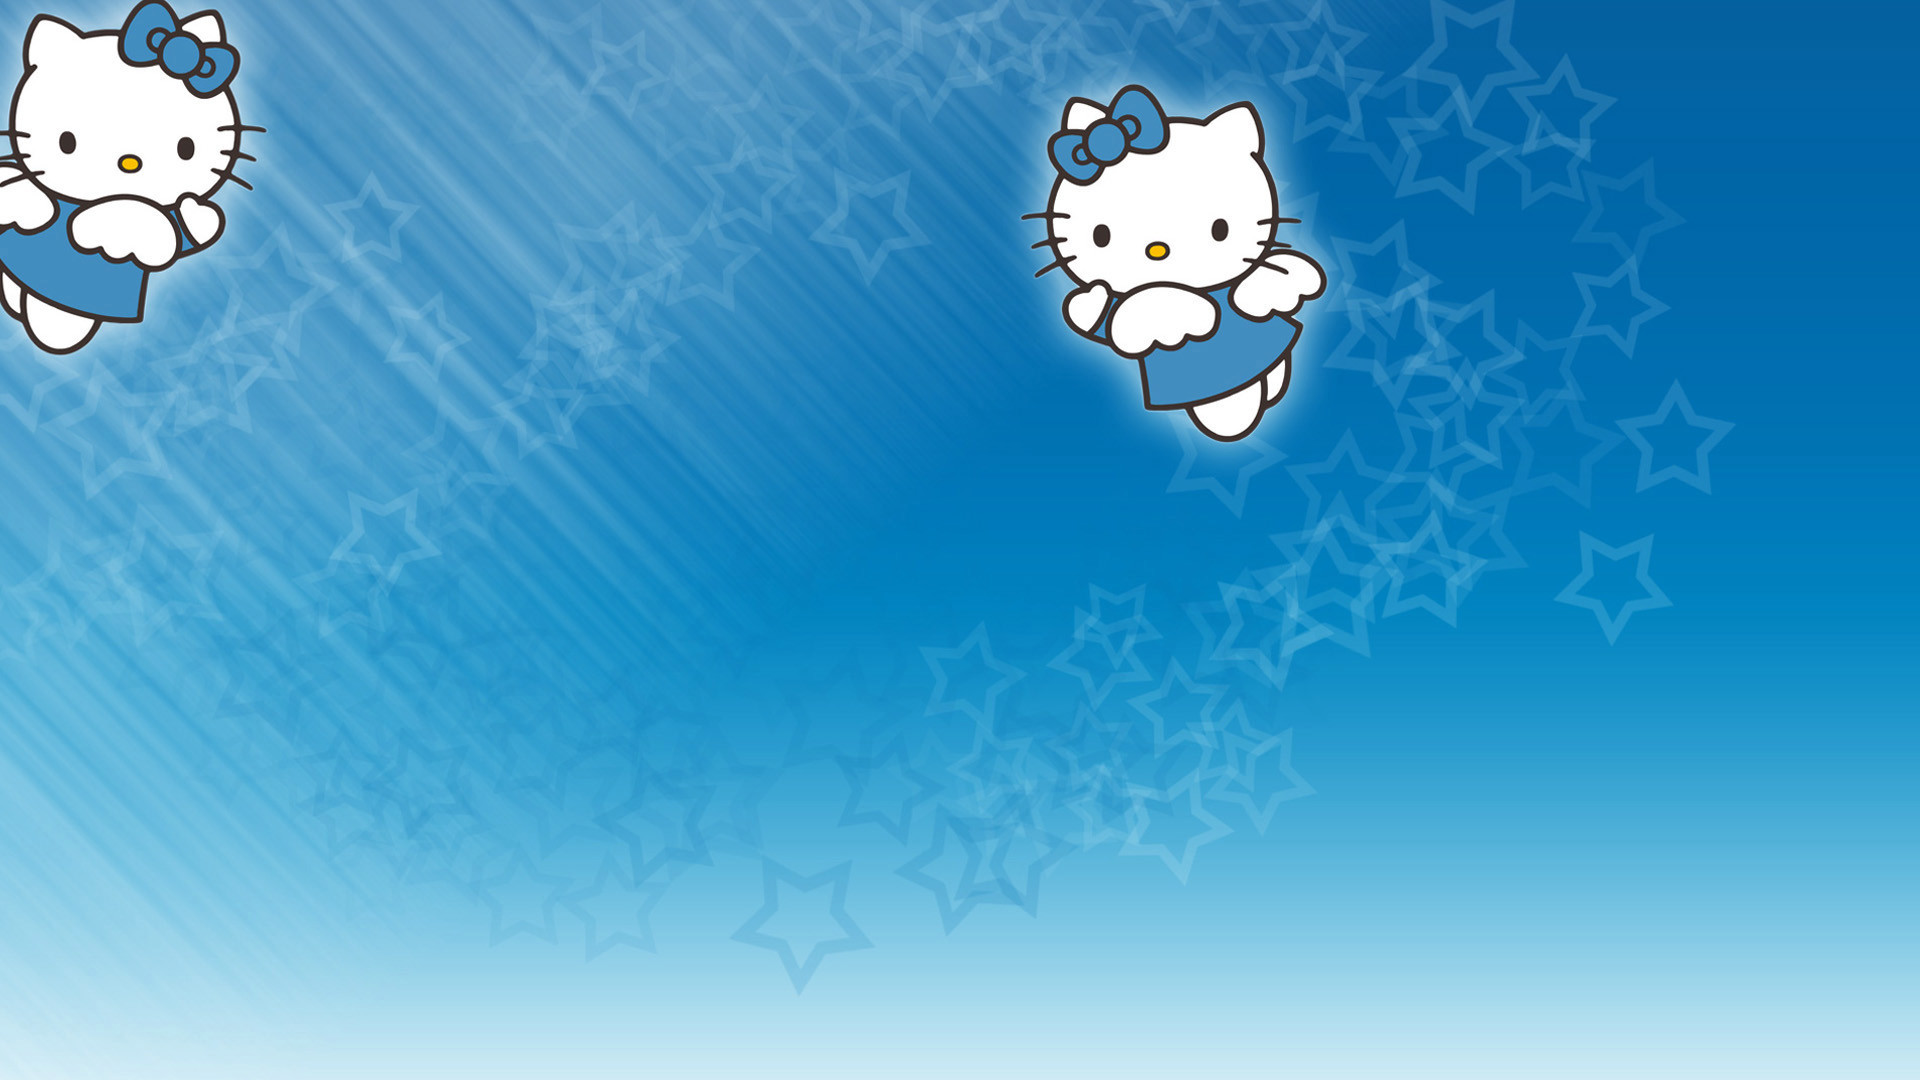 1920x1080 pretty blue backgrounds | blue, hello, kitty, background, cute, backgrounds,